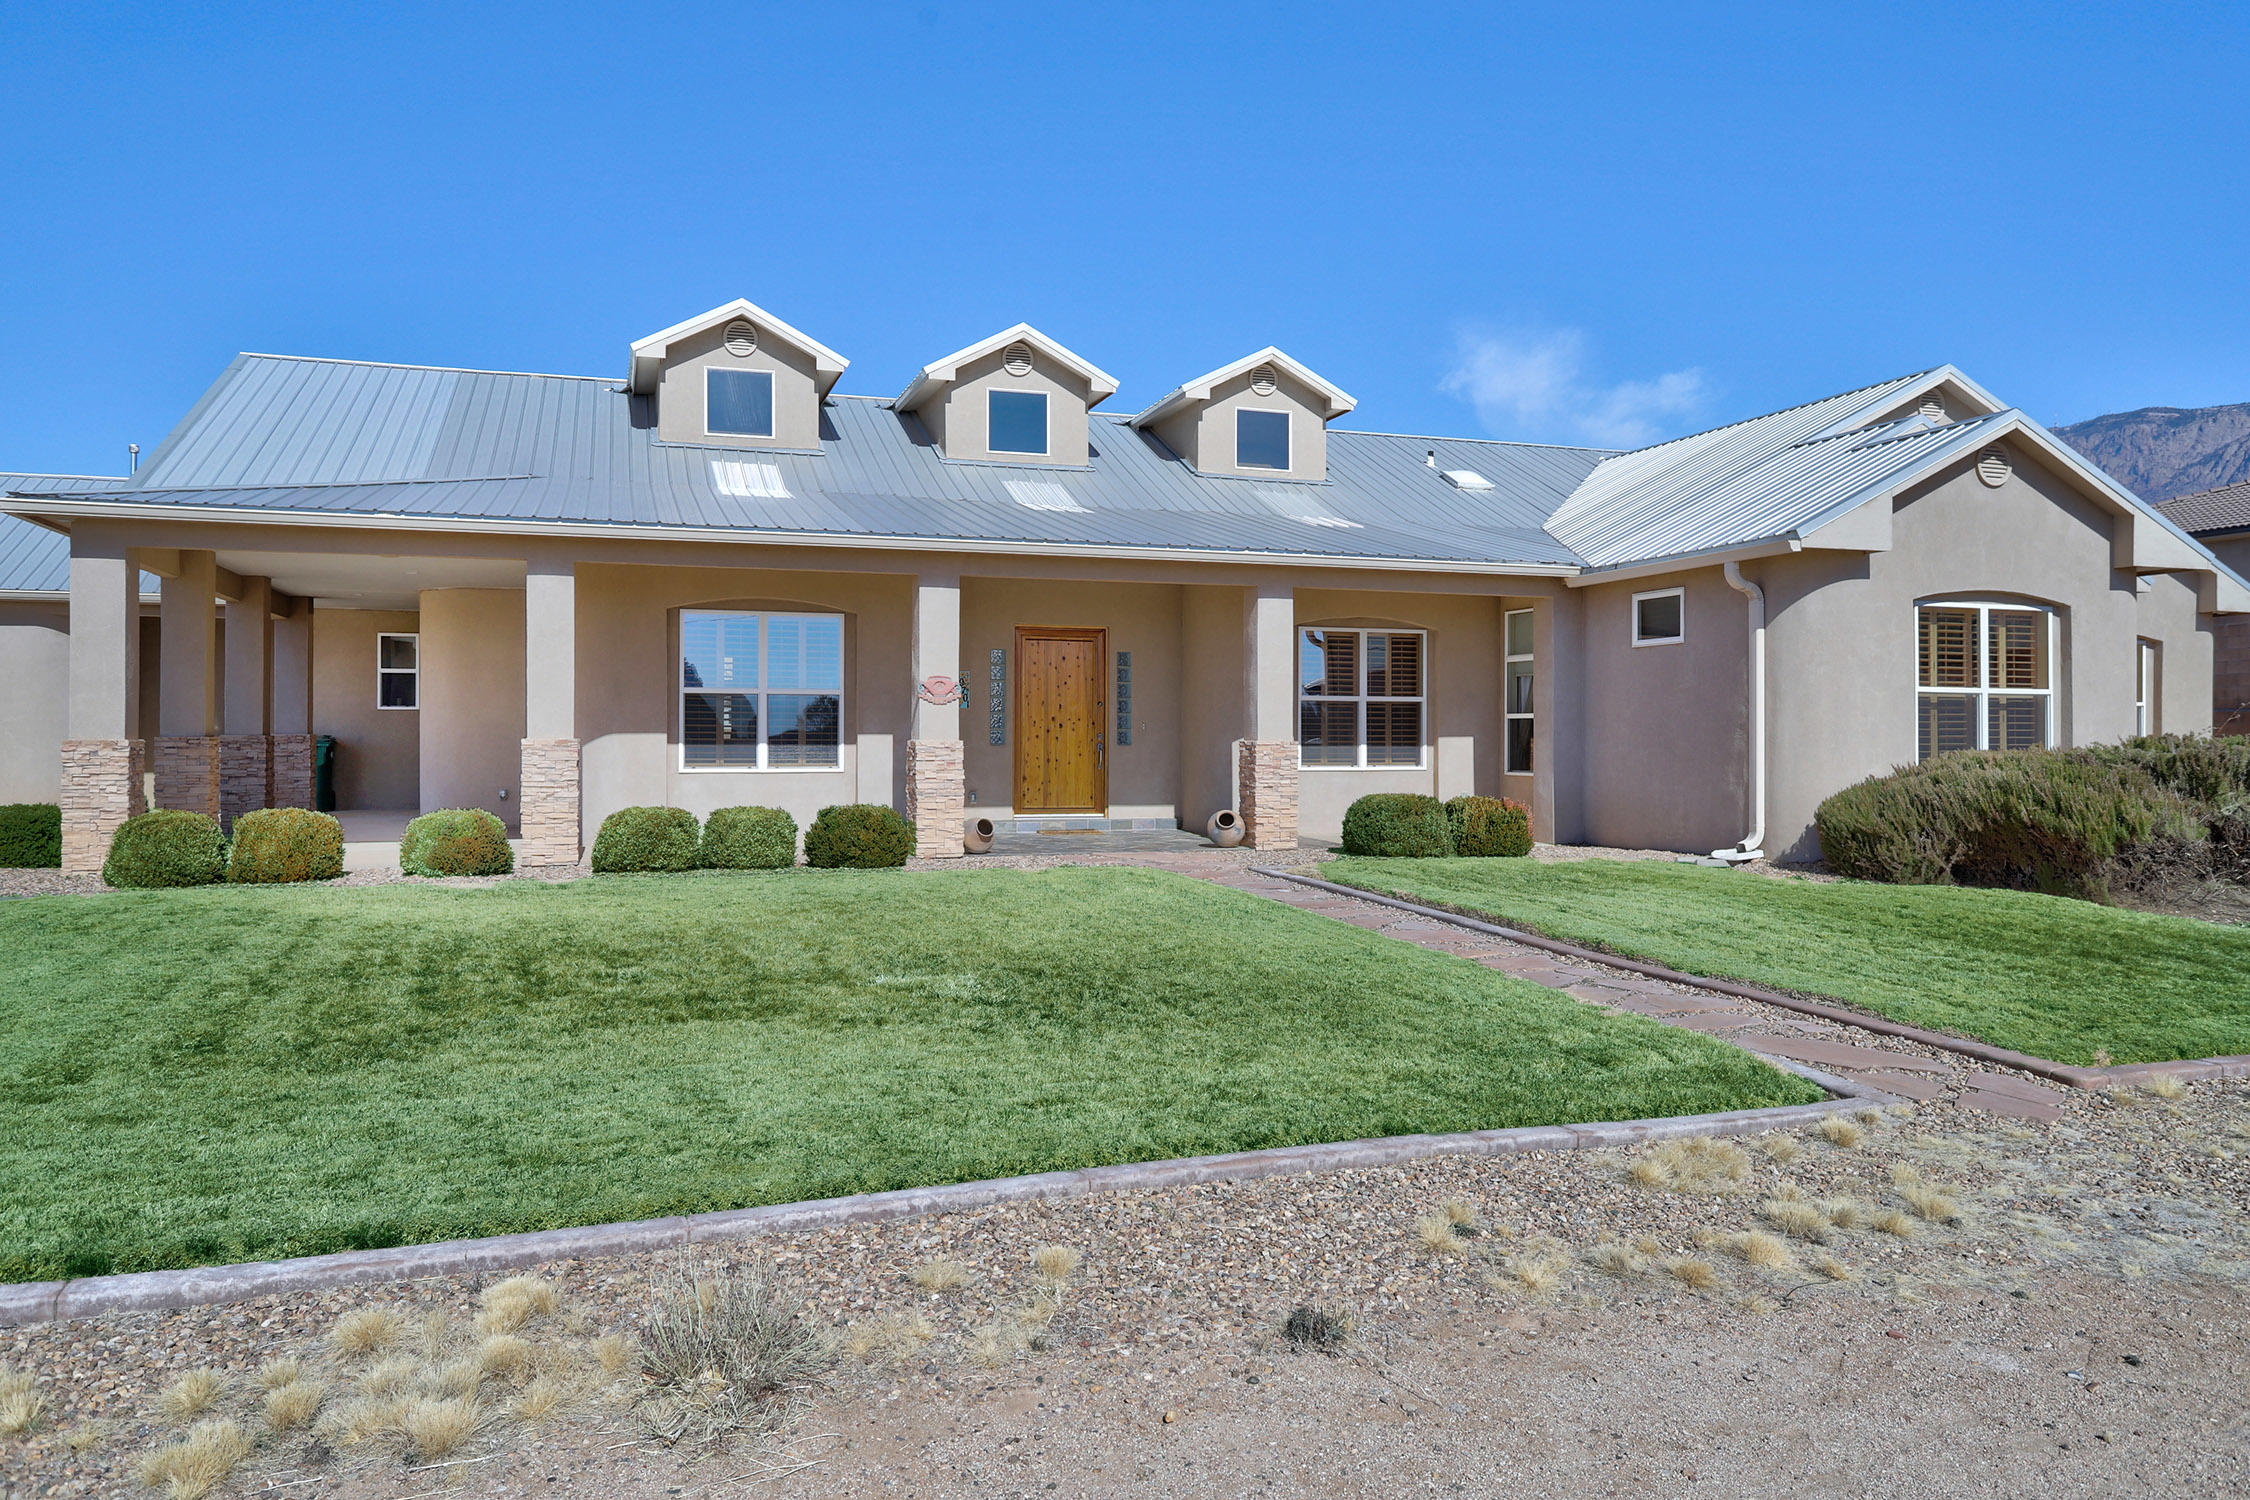 Come check out this beautiful custom home in Albuquerque Acres! Home features include Gourmet Kitchen, Granite, Custom Cabinets, Stainless Steel Appliances W/ Double Oven, Skip Trowel Plaster, Plantation Shutters, Solid Wood Doors, Recirculating Hot Water, 2 Large Living Areas, Private Master Suite with large  Secondary Bedrooms, and  Office Refrigerated Air and Radiant Heat.